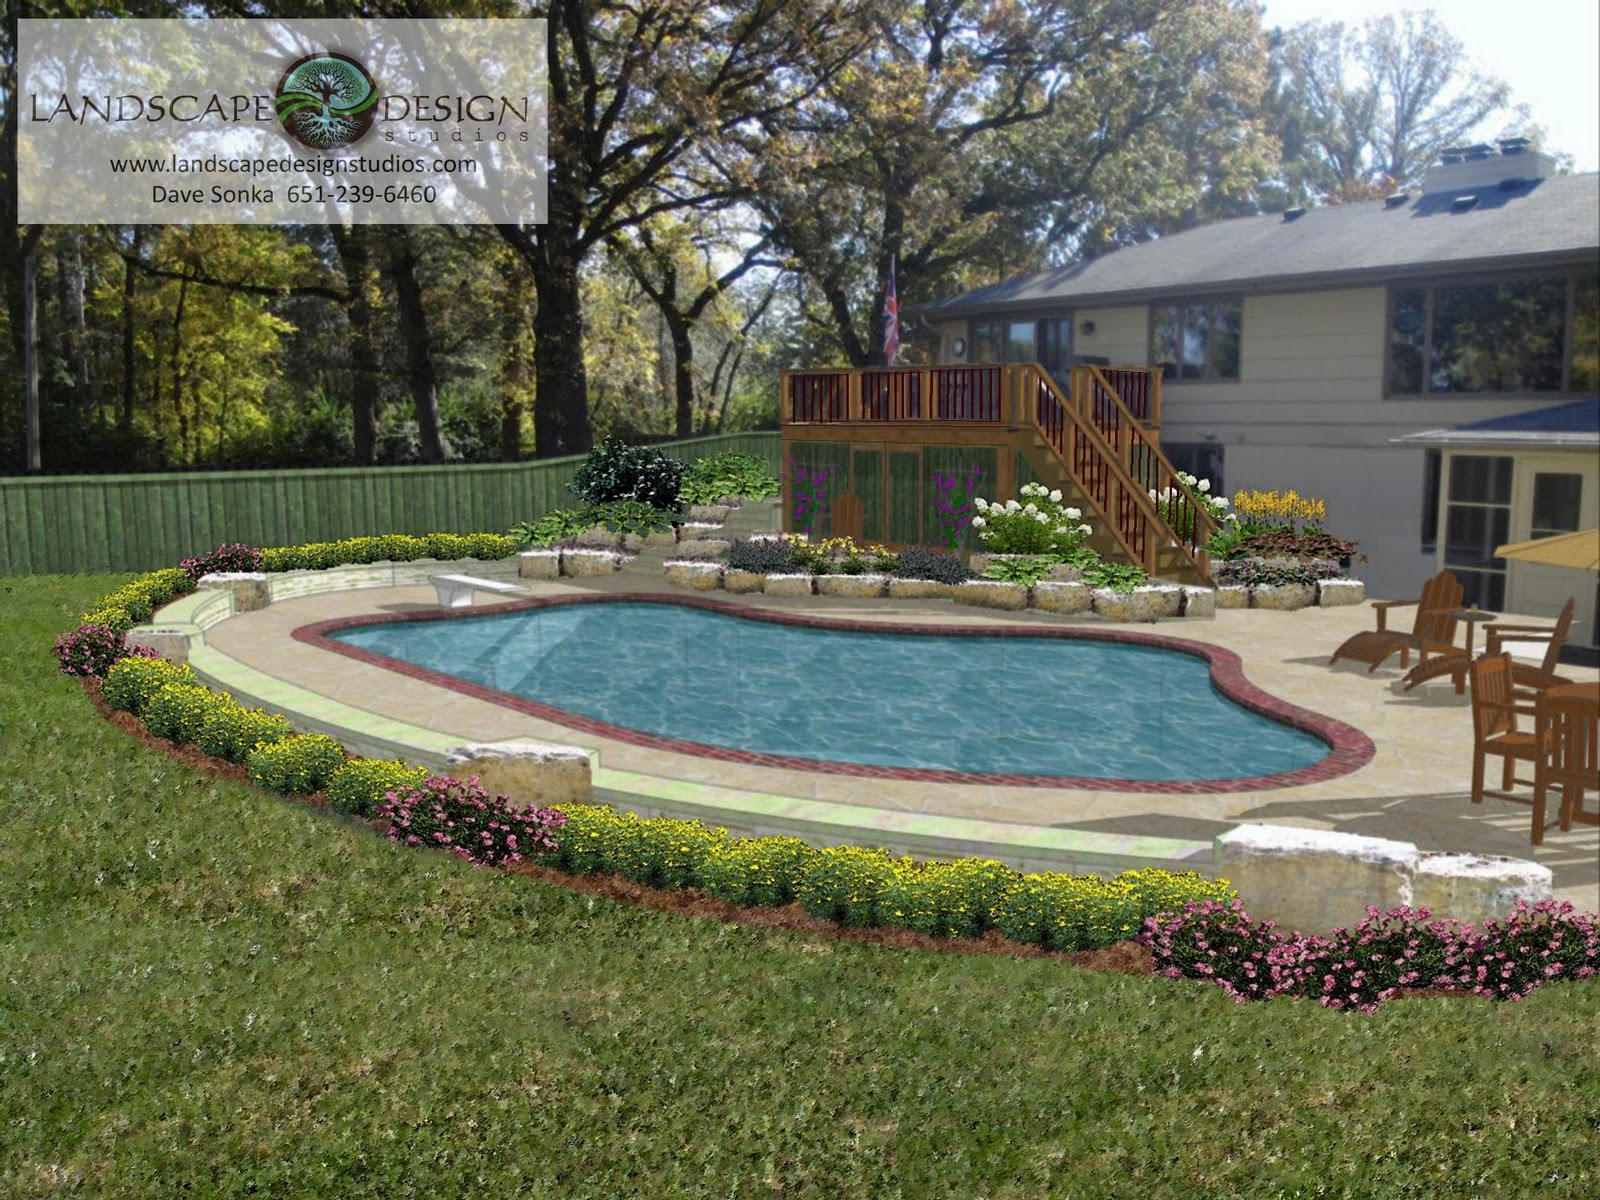 Landscaping area landscaping ideas around spa pools for Pool landscaping ideas